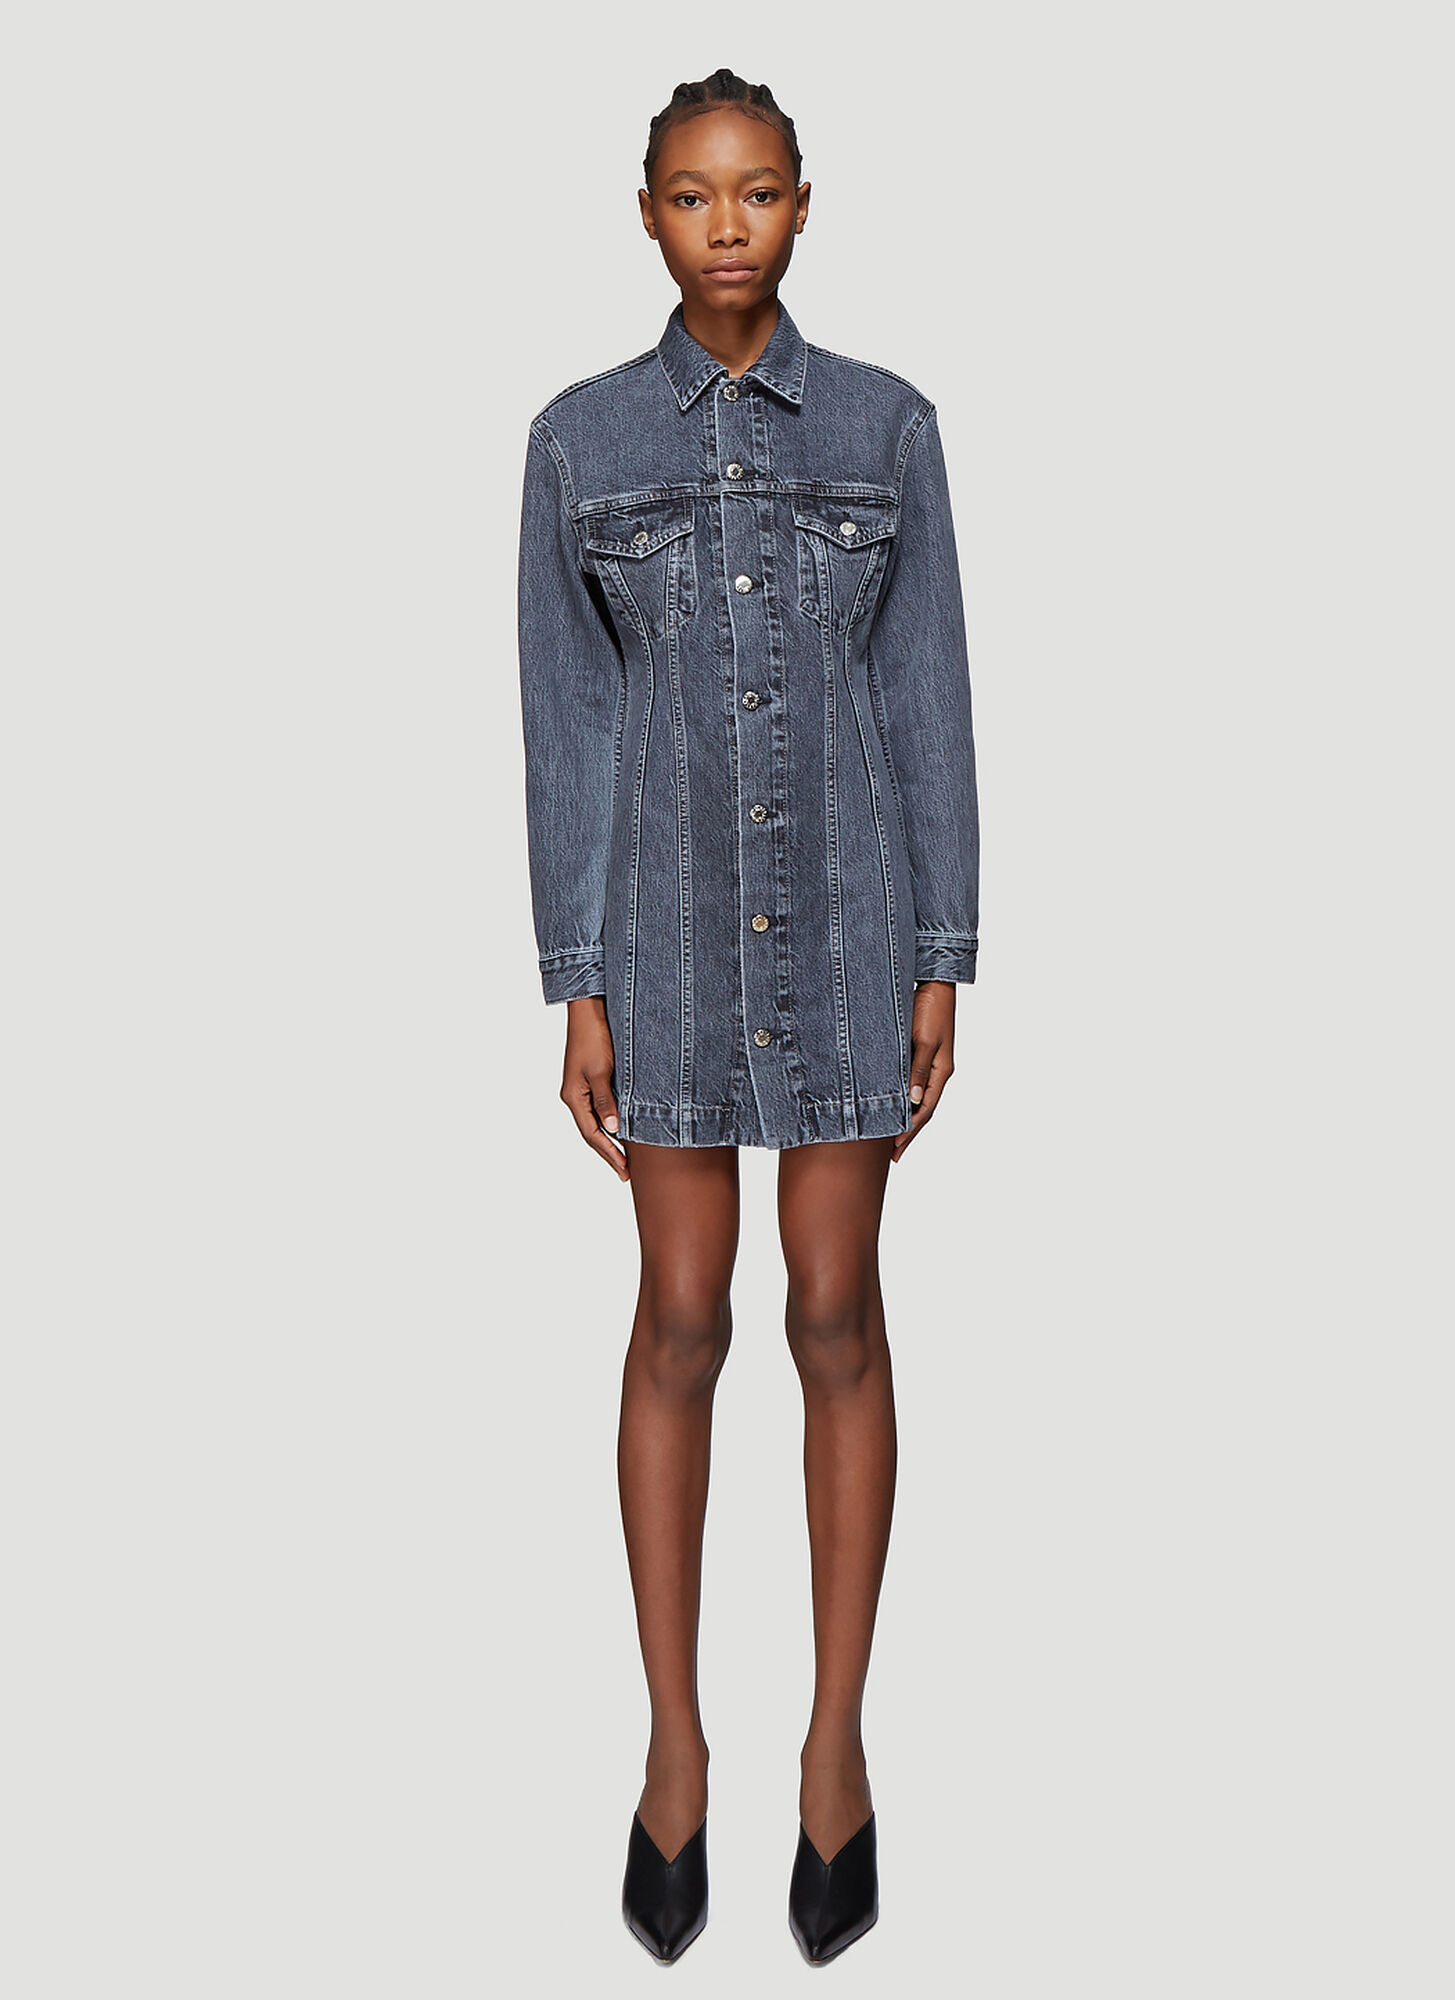 Photo of Helmut Lang Femme Denim Dress in Blue - Helmut Lang Dresses